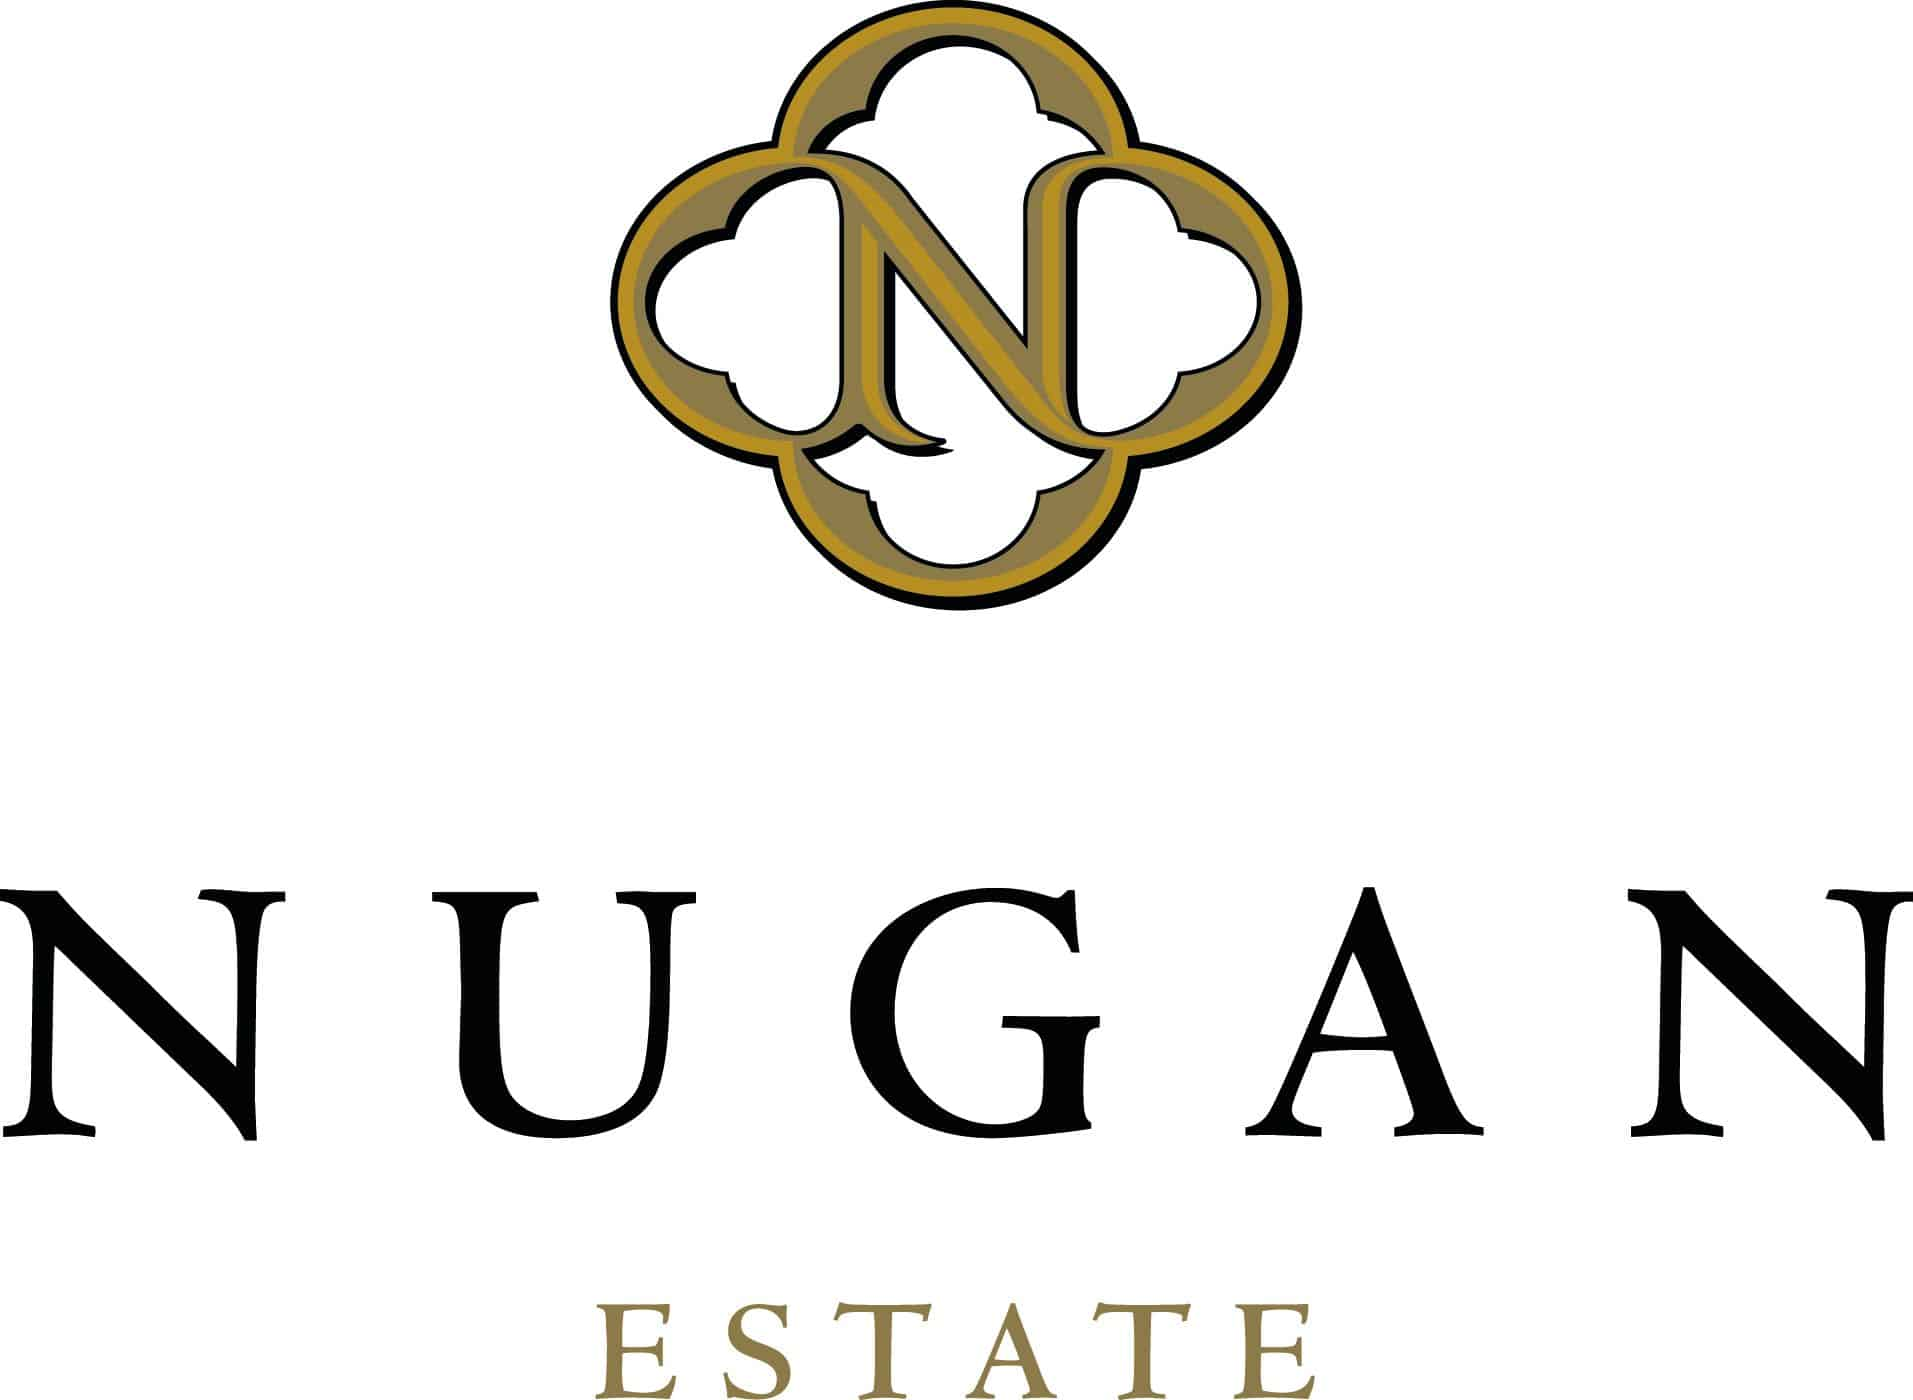 Nugan Estate Logo